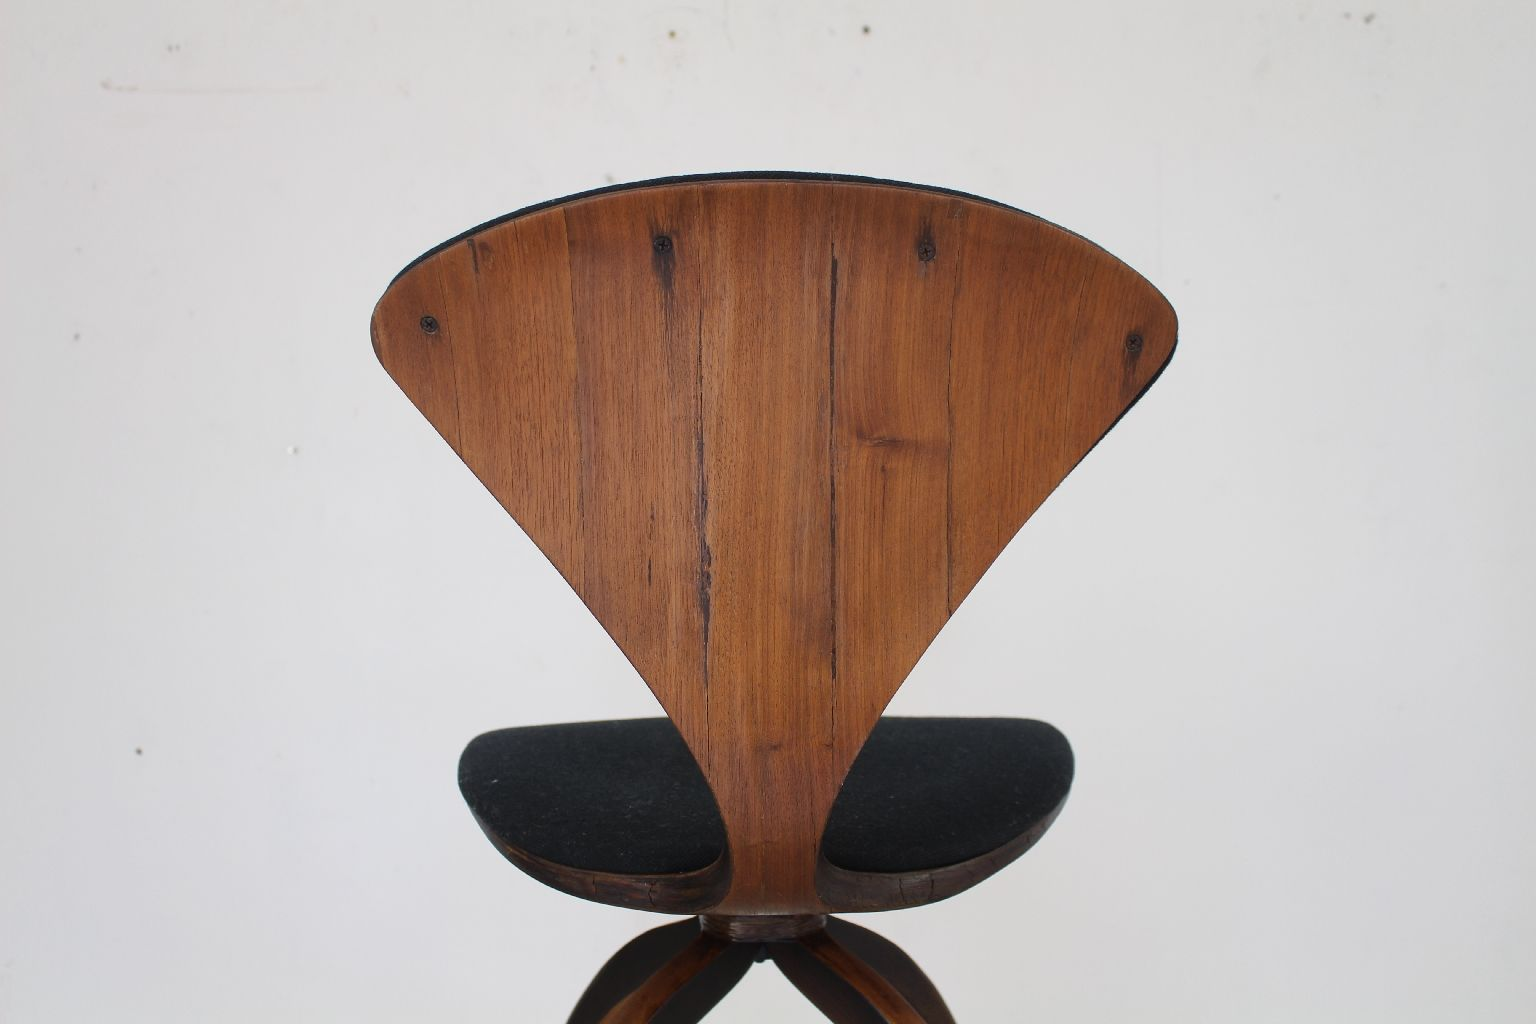 Plywood Barstool By Norman Cherner For Plycraft 1965 For